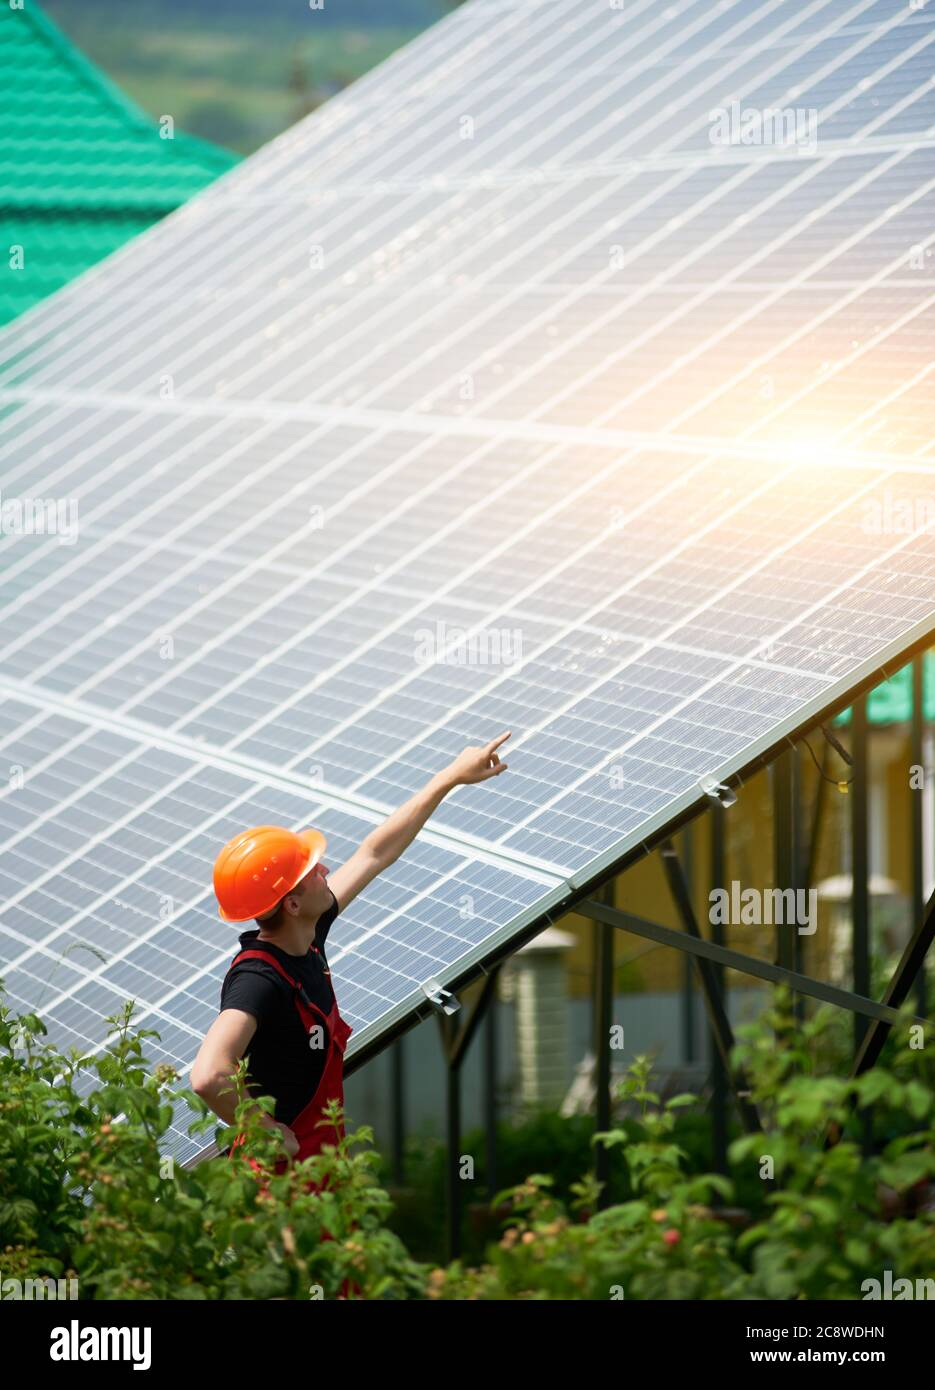 Man worker in an orange helmet pointing at a high solar station on a plot of land with greenery. Alternative cheap sun energy production and profitable financial investment concept Stock Photo